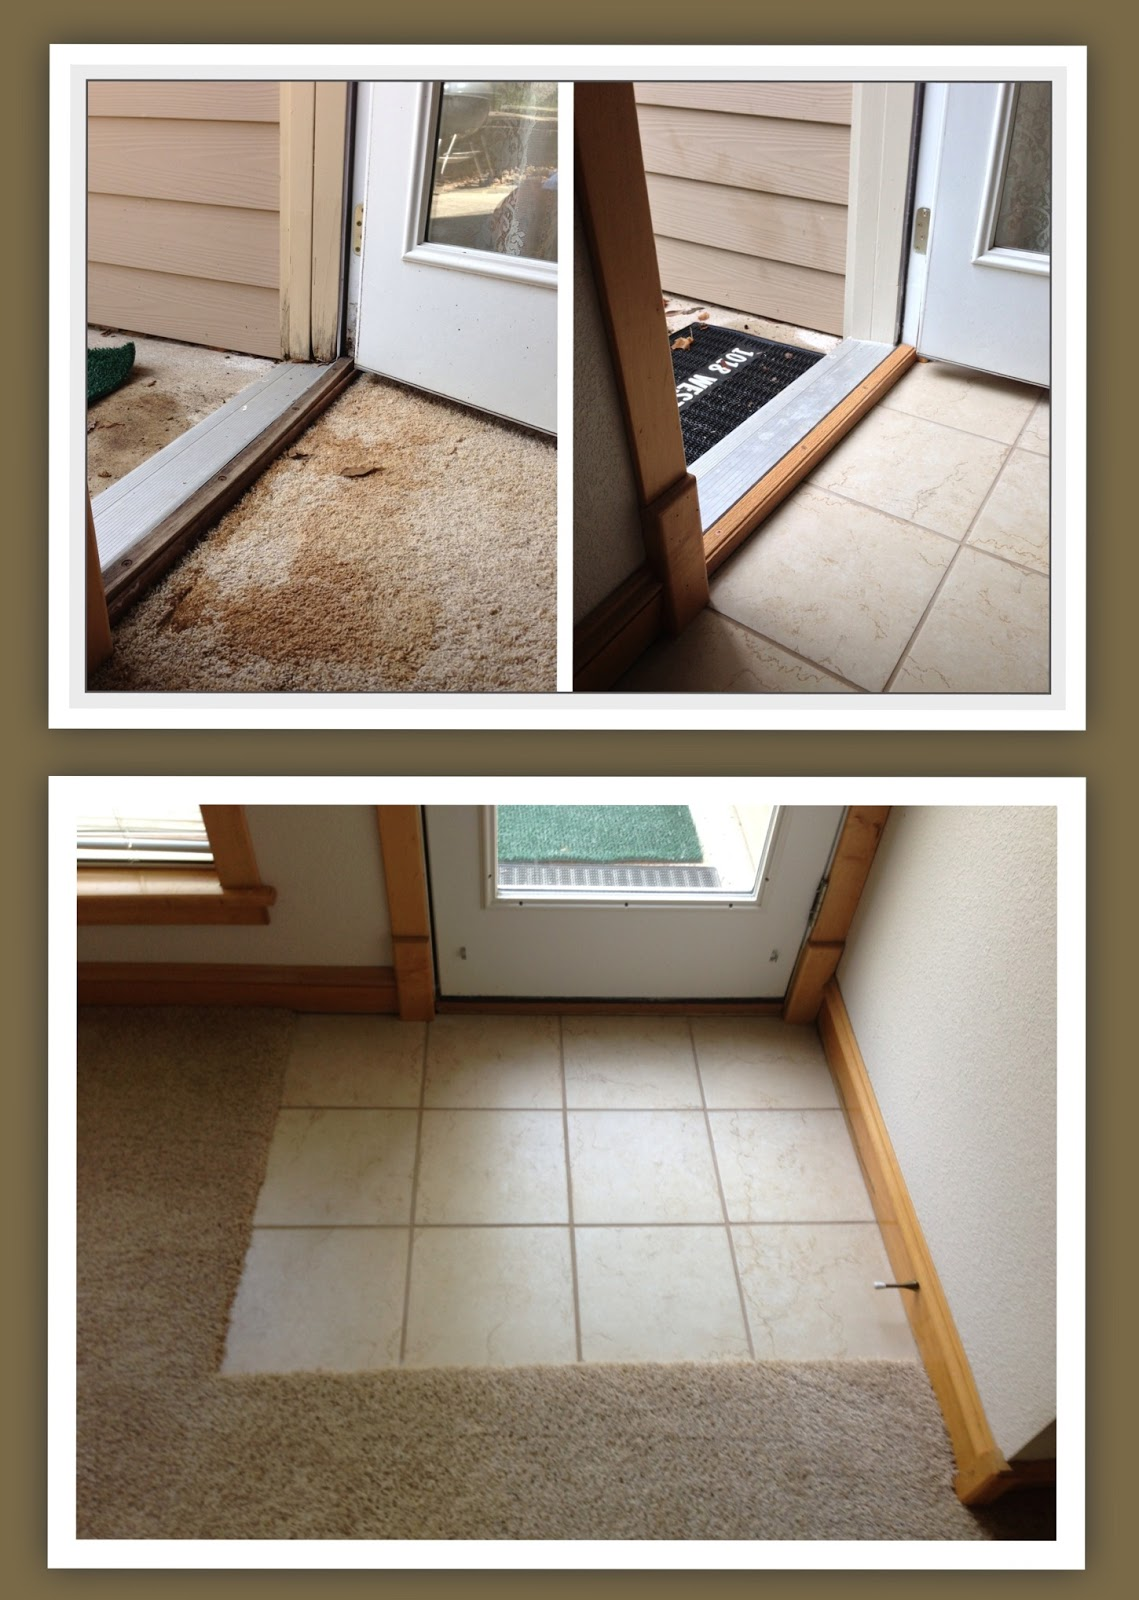 Tiling Bathroom Door Threshold henderson's home improvement llc: replace damaged carpet with a